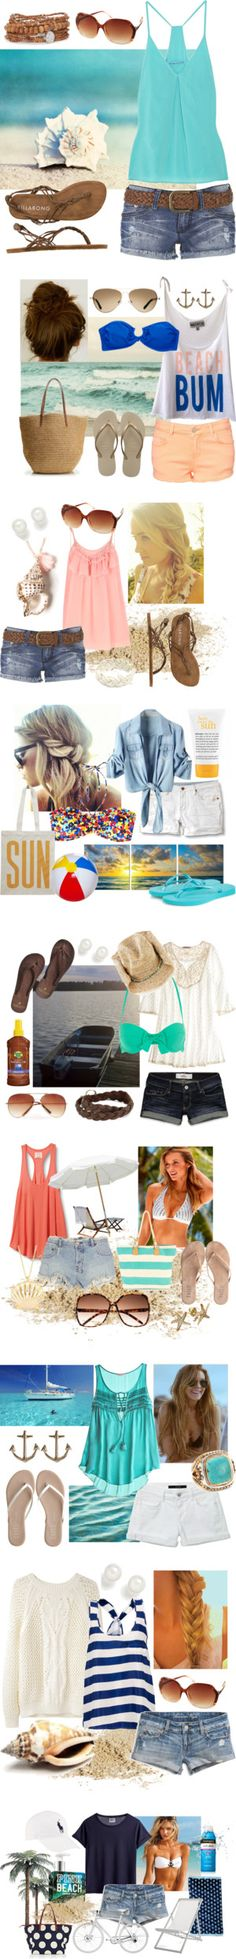 Beach/ Summer time styles